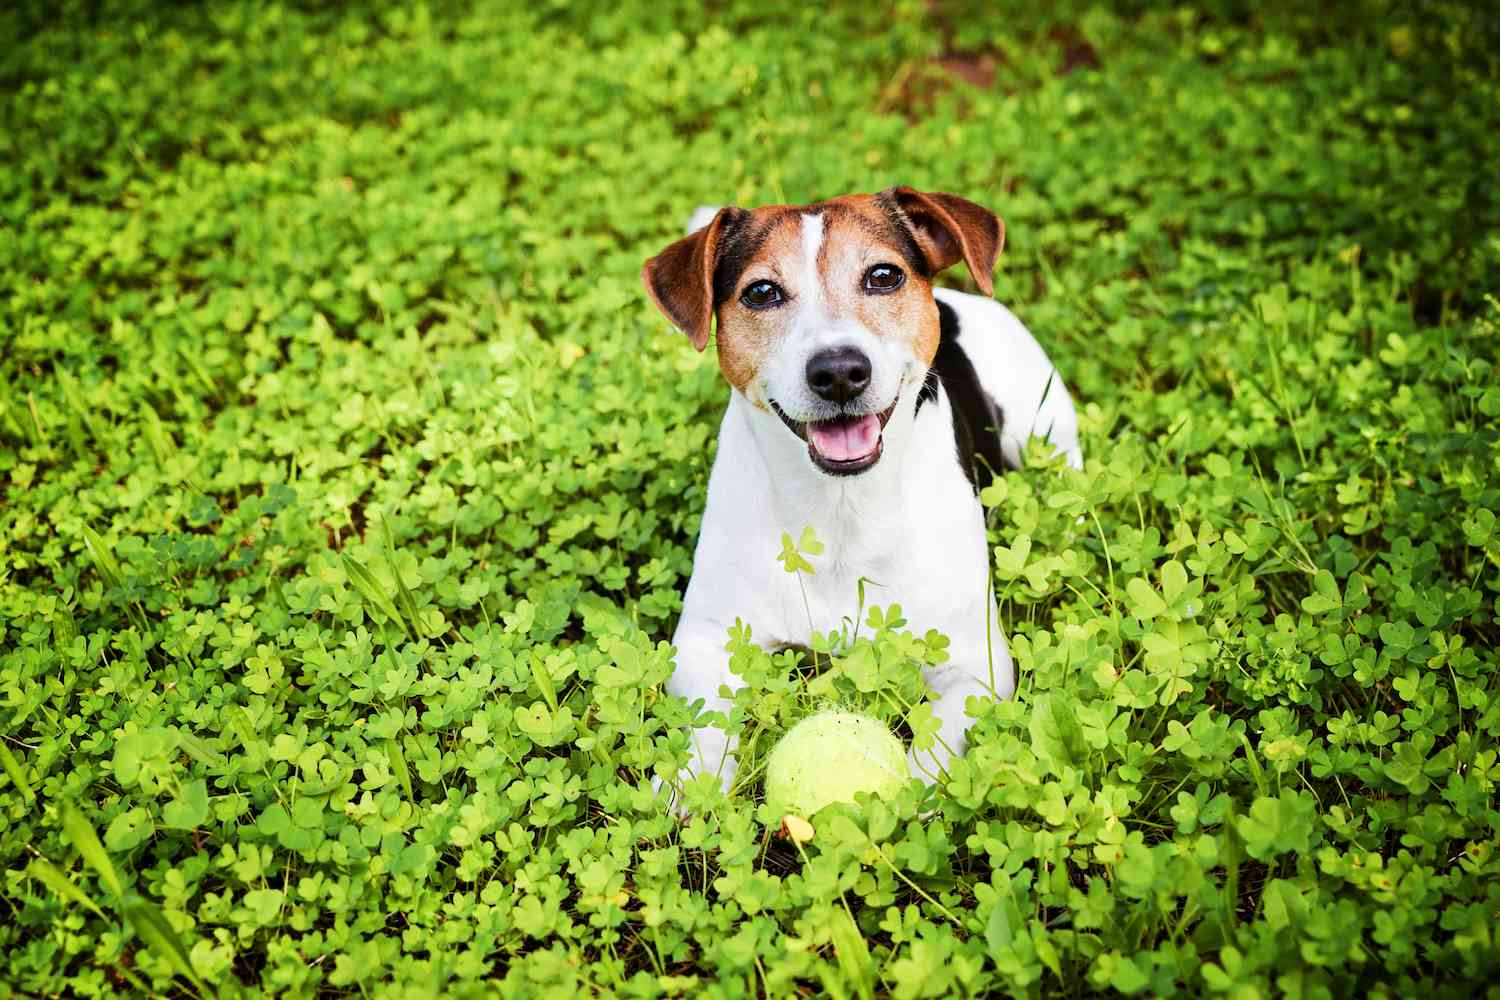 terrier breed group - dog in clovers